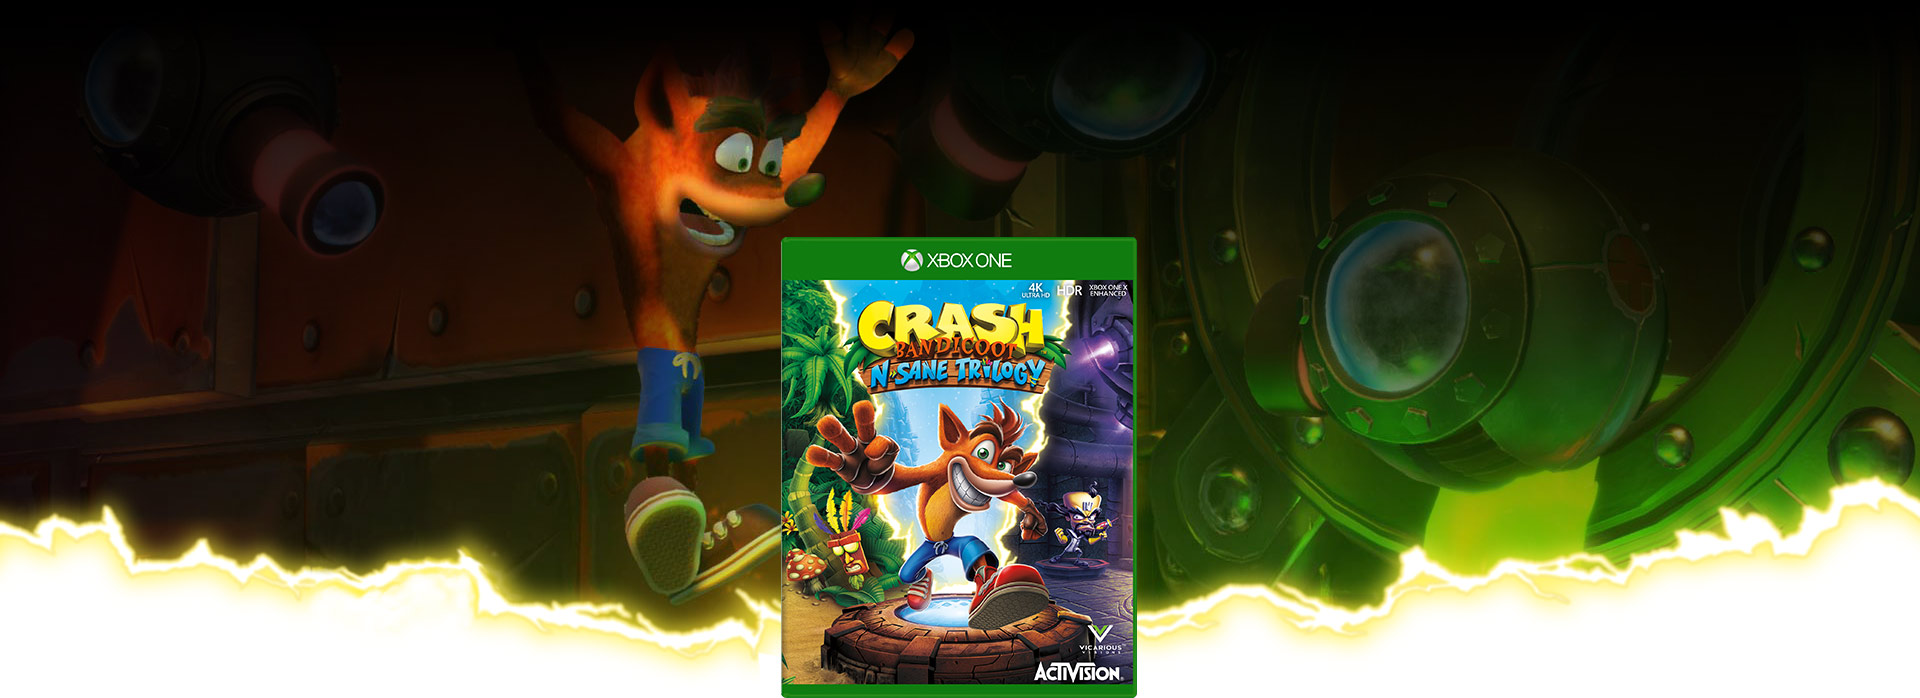 Crash Bandicoot Insane Trilogy-coverbilde med lynstråler ut fra esken, i bakgrunnen hopper Crash over grønt slam